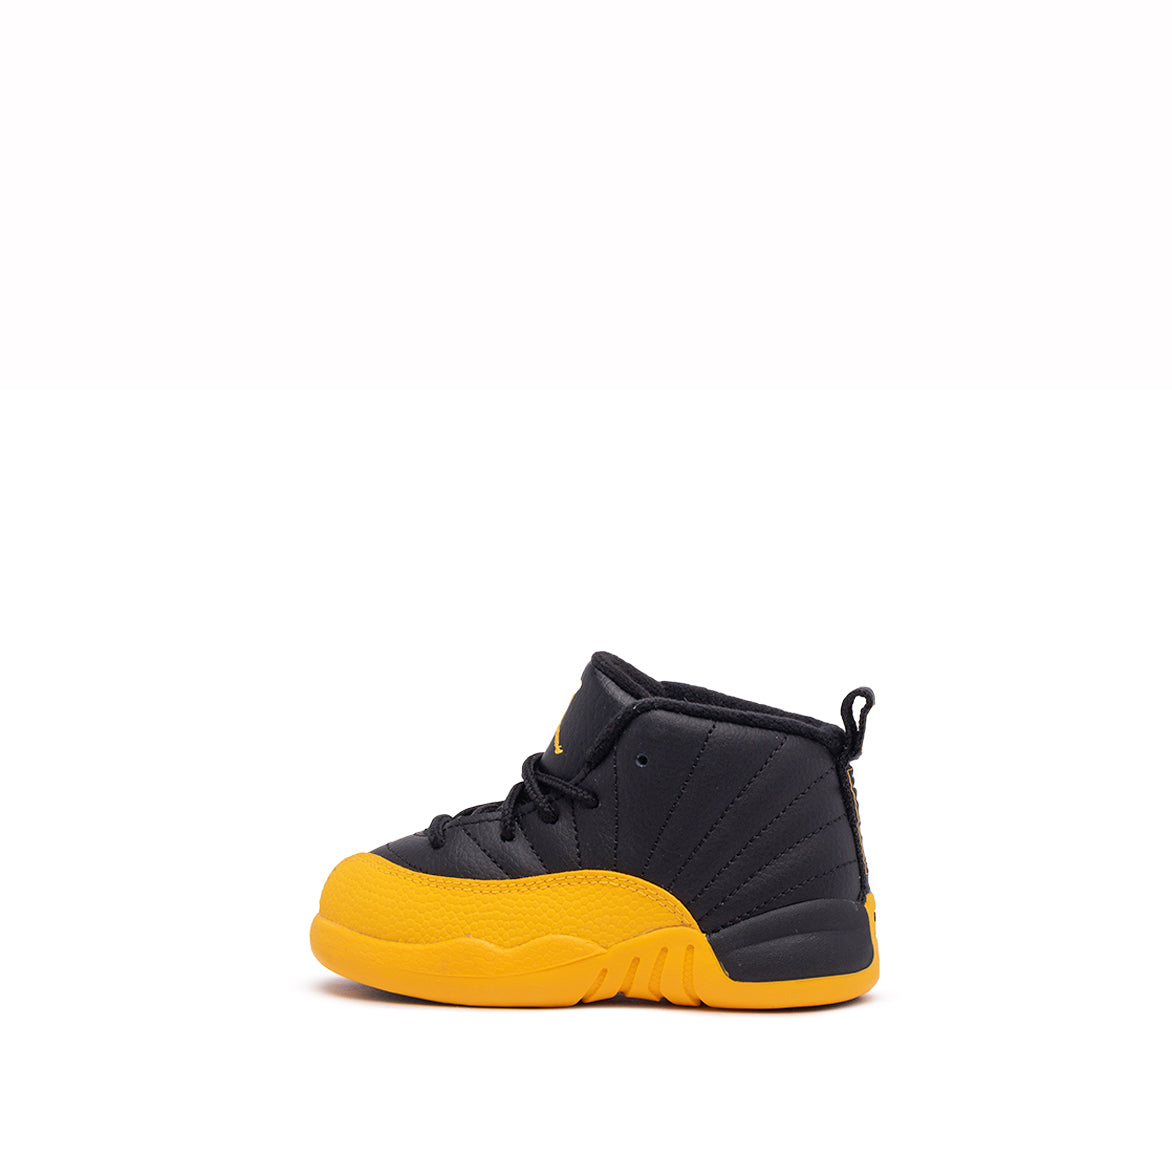 "AIR JORDAN 12 RETRO (TD) ""UNIVERSITY GOLD"""